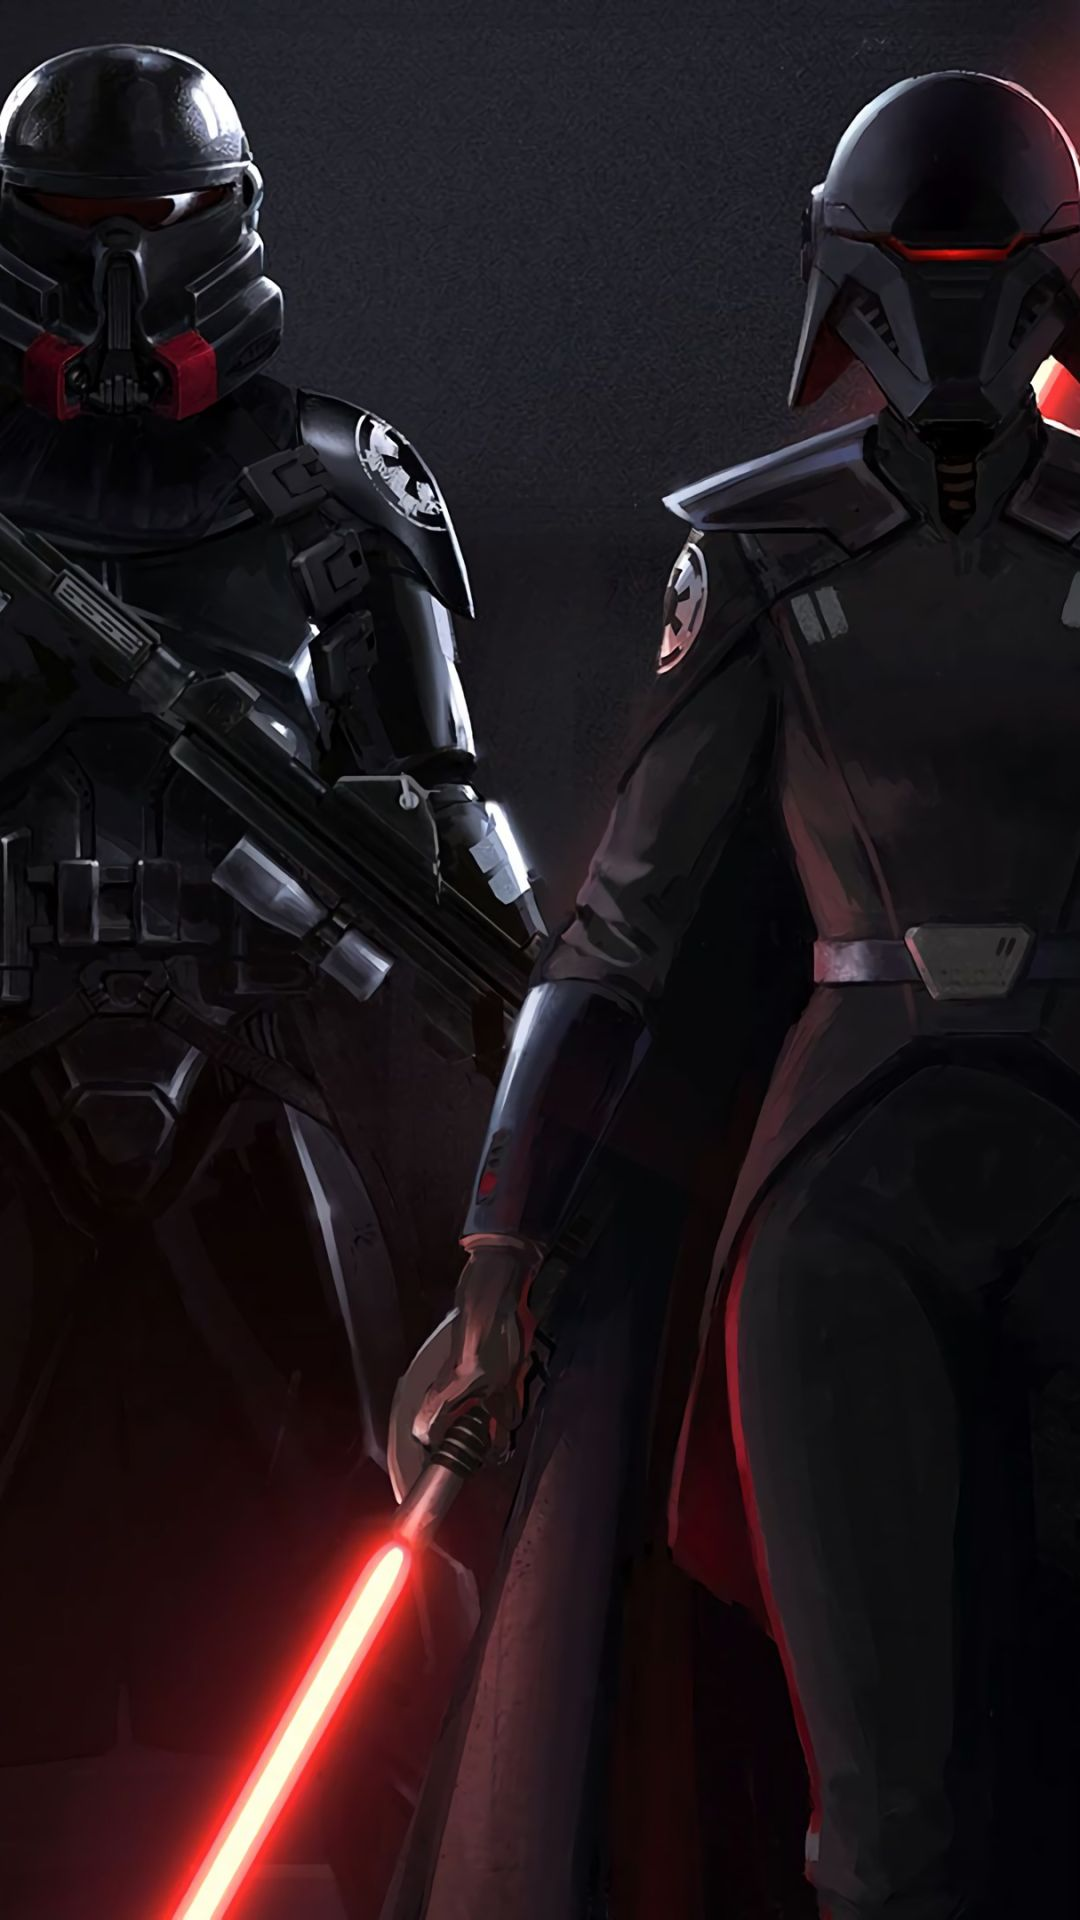 Download This Wallpaper Video Game Star Wars Jedi Fallen Order 1080x1920 For All Your Phones And Tablets Star Wars Jedi Star Wars Prints Star Wars Poster